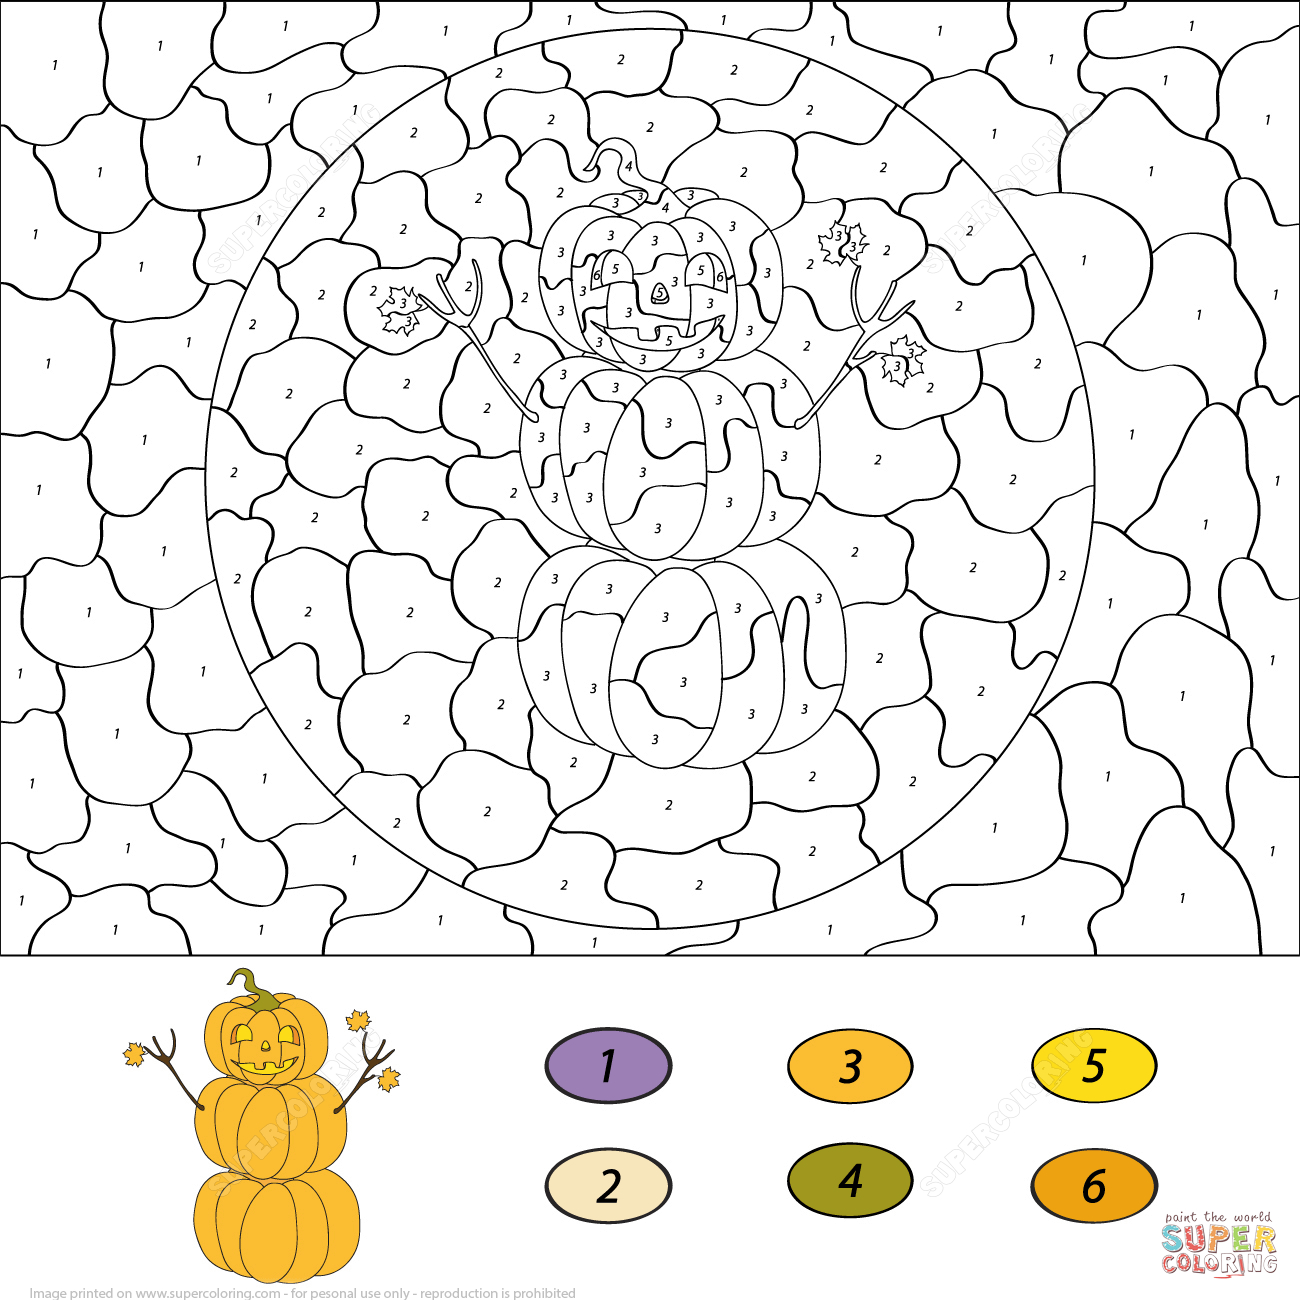 Pumpkin Snowman Colornumber | Free Printable Coloring Pages - Free Printable Paint By Number Coloring Pages